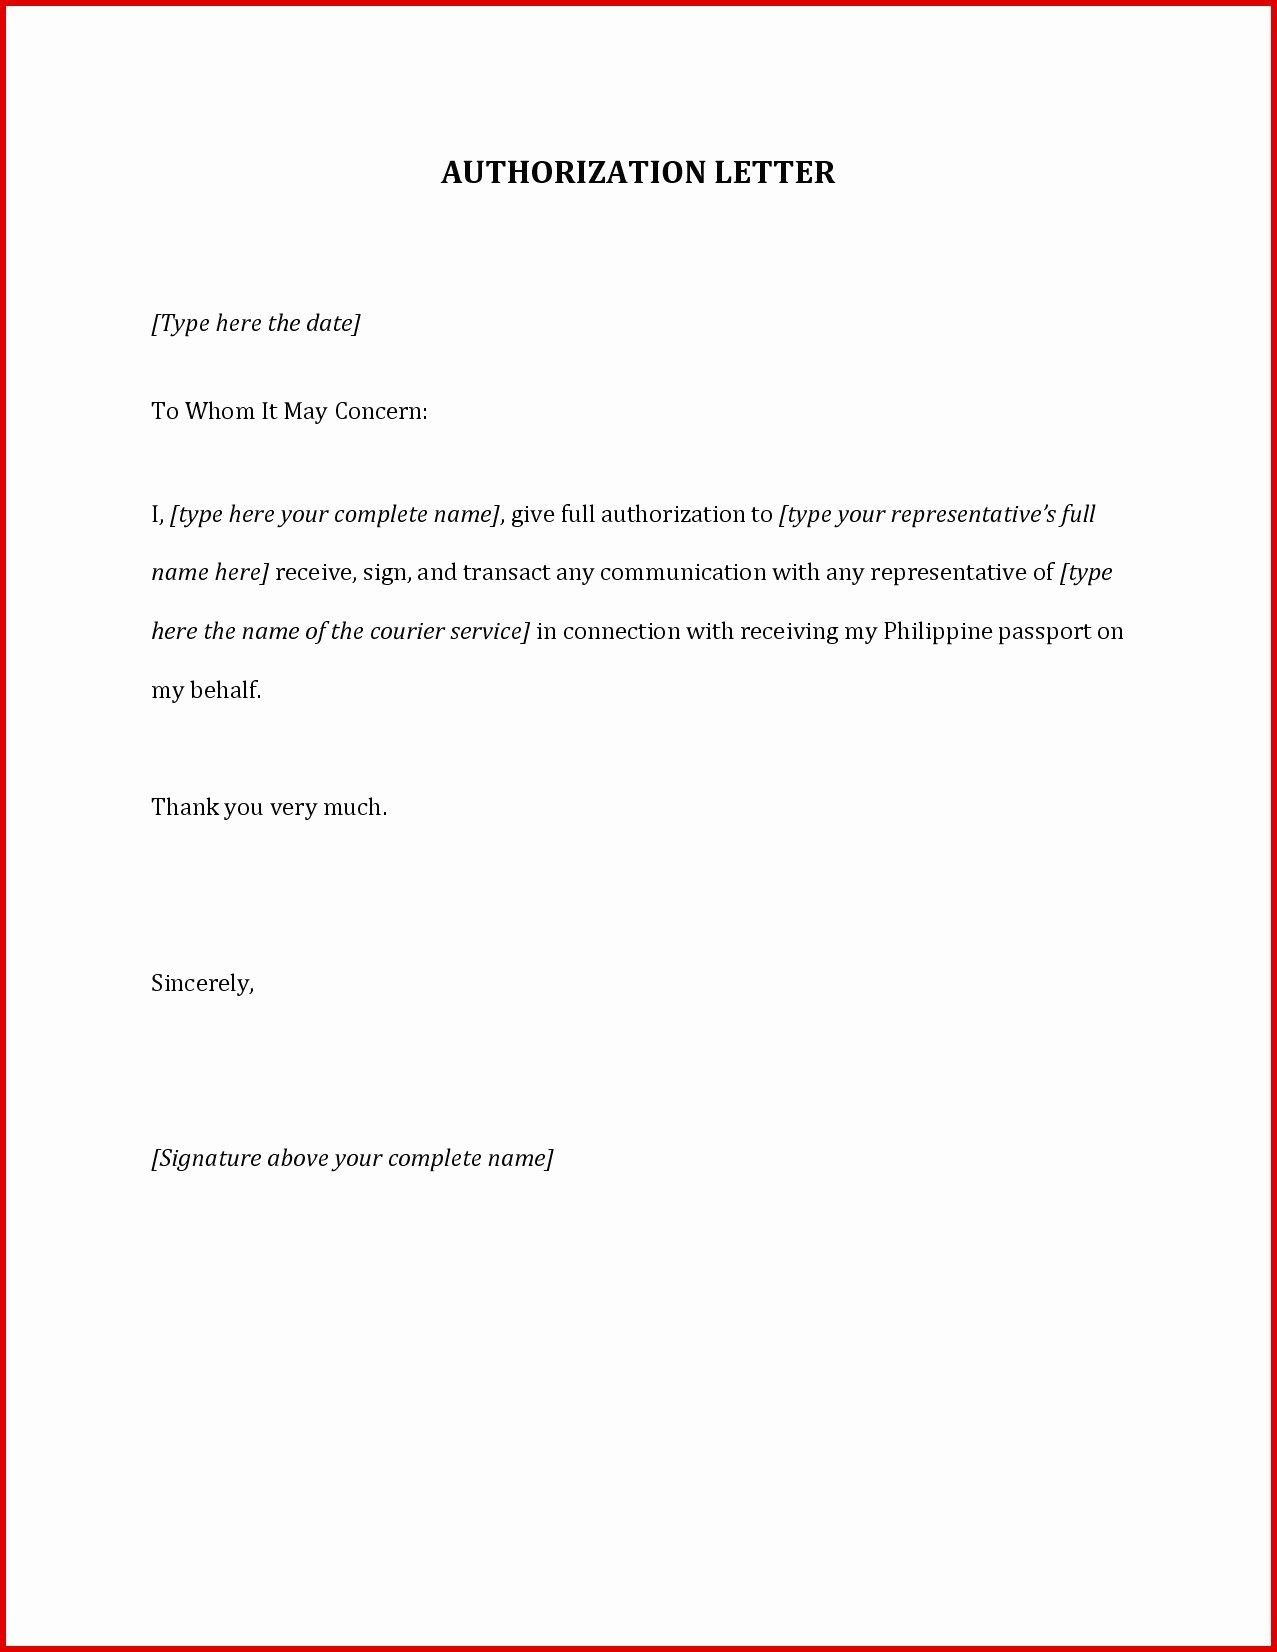 Authorization Letter Sample 10 Best Authorization Letter Samples And Formats By Www Wordtemplateso Letter Template Word Lettering Business Letter Sample